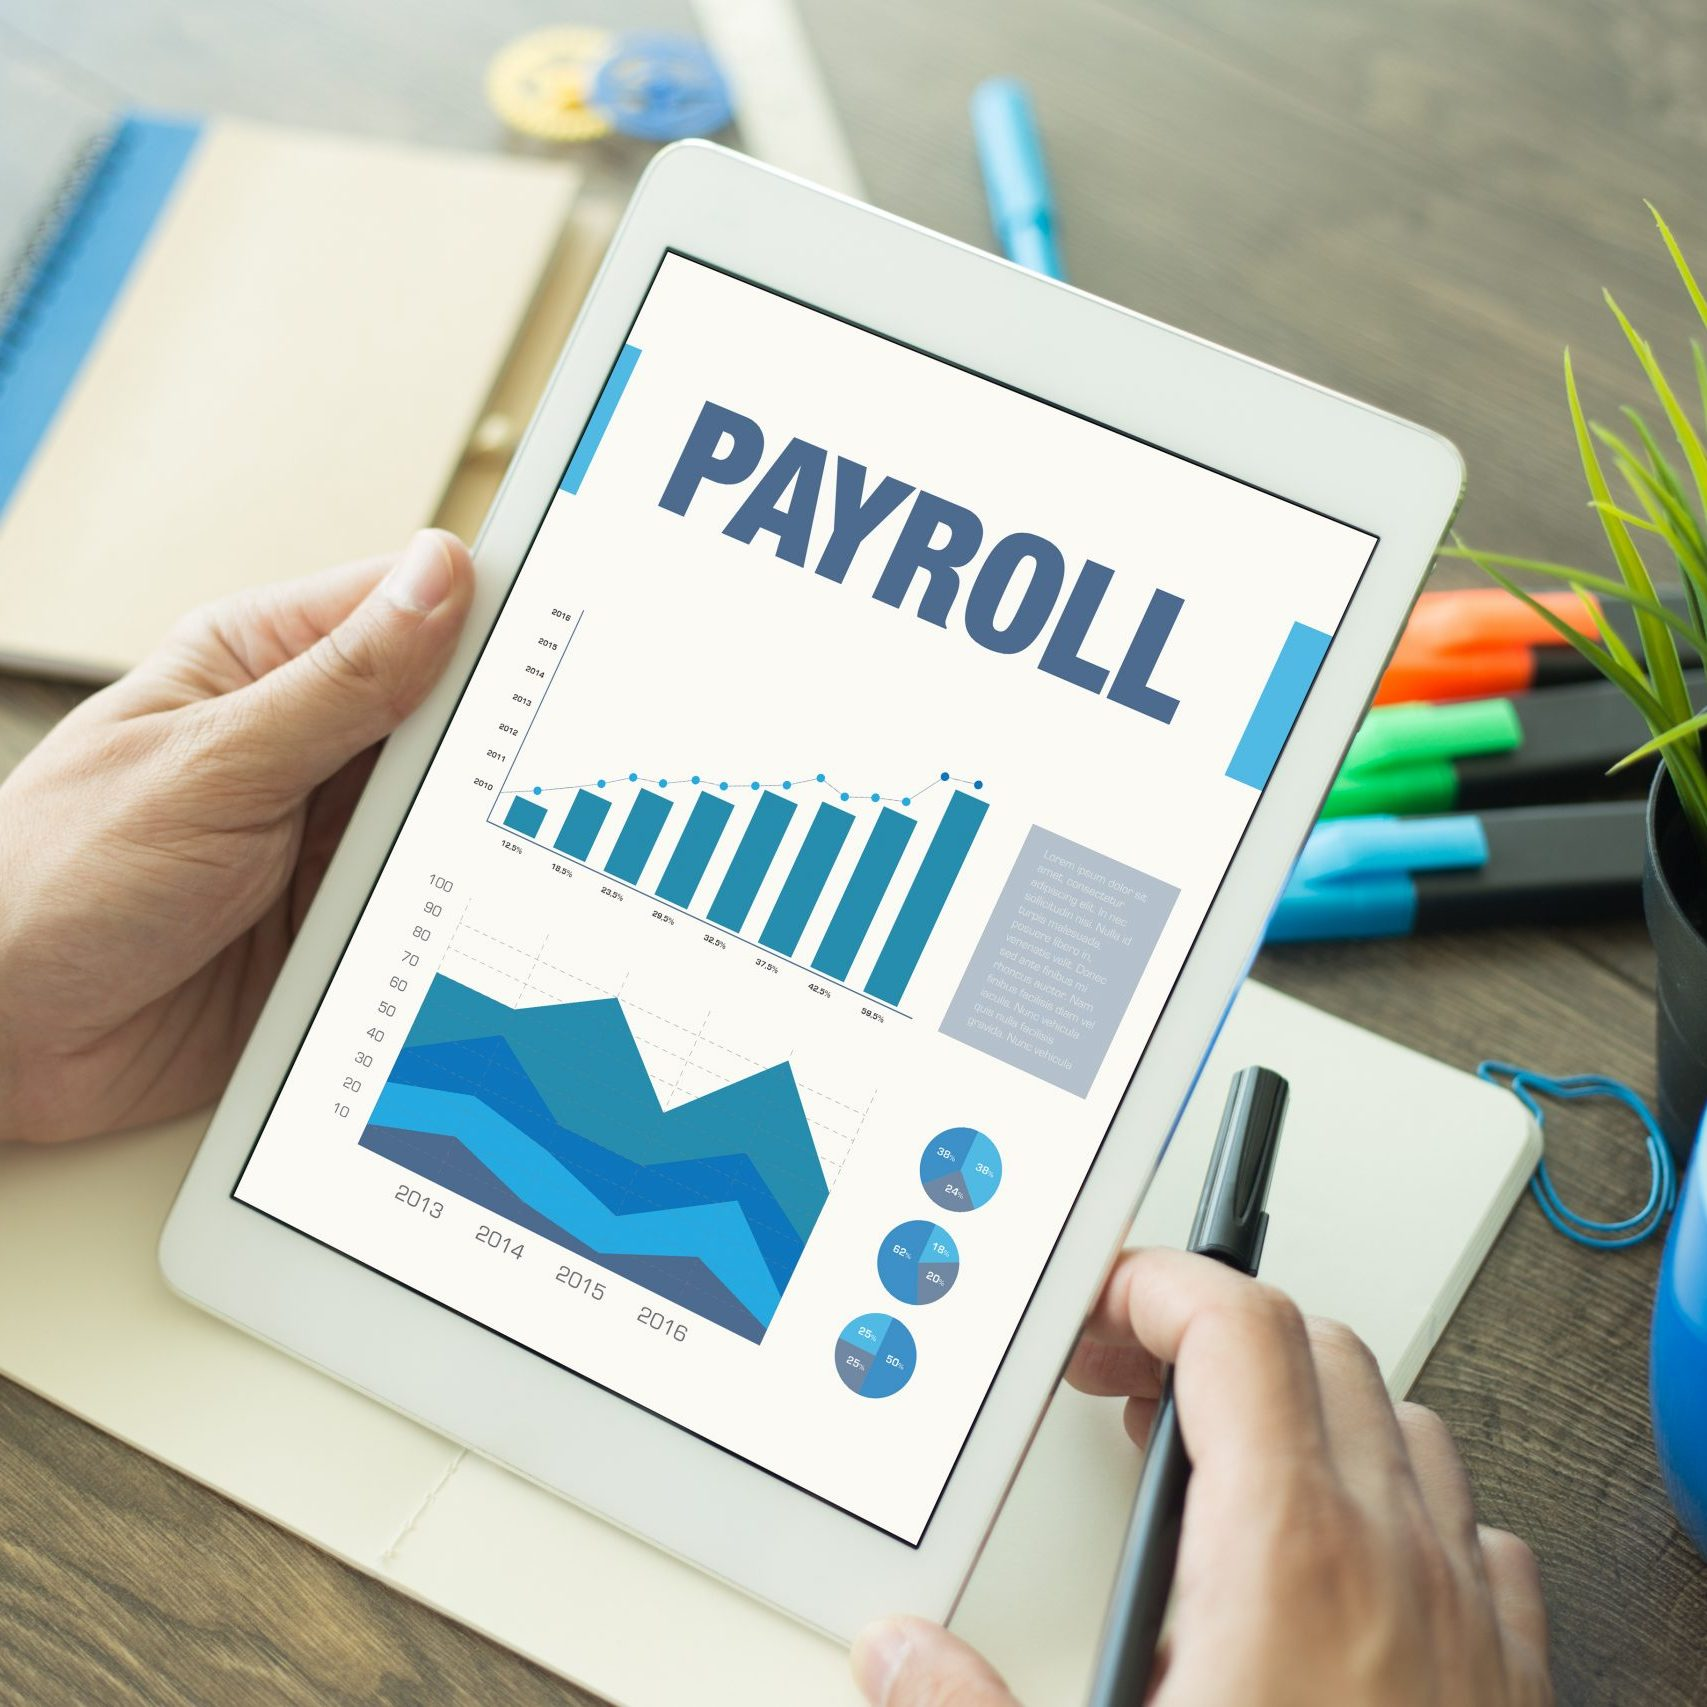 Payroll and Human Resources Business Management